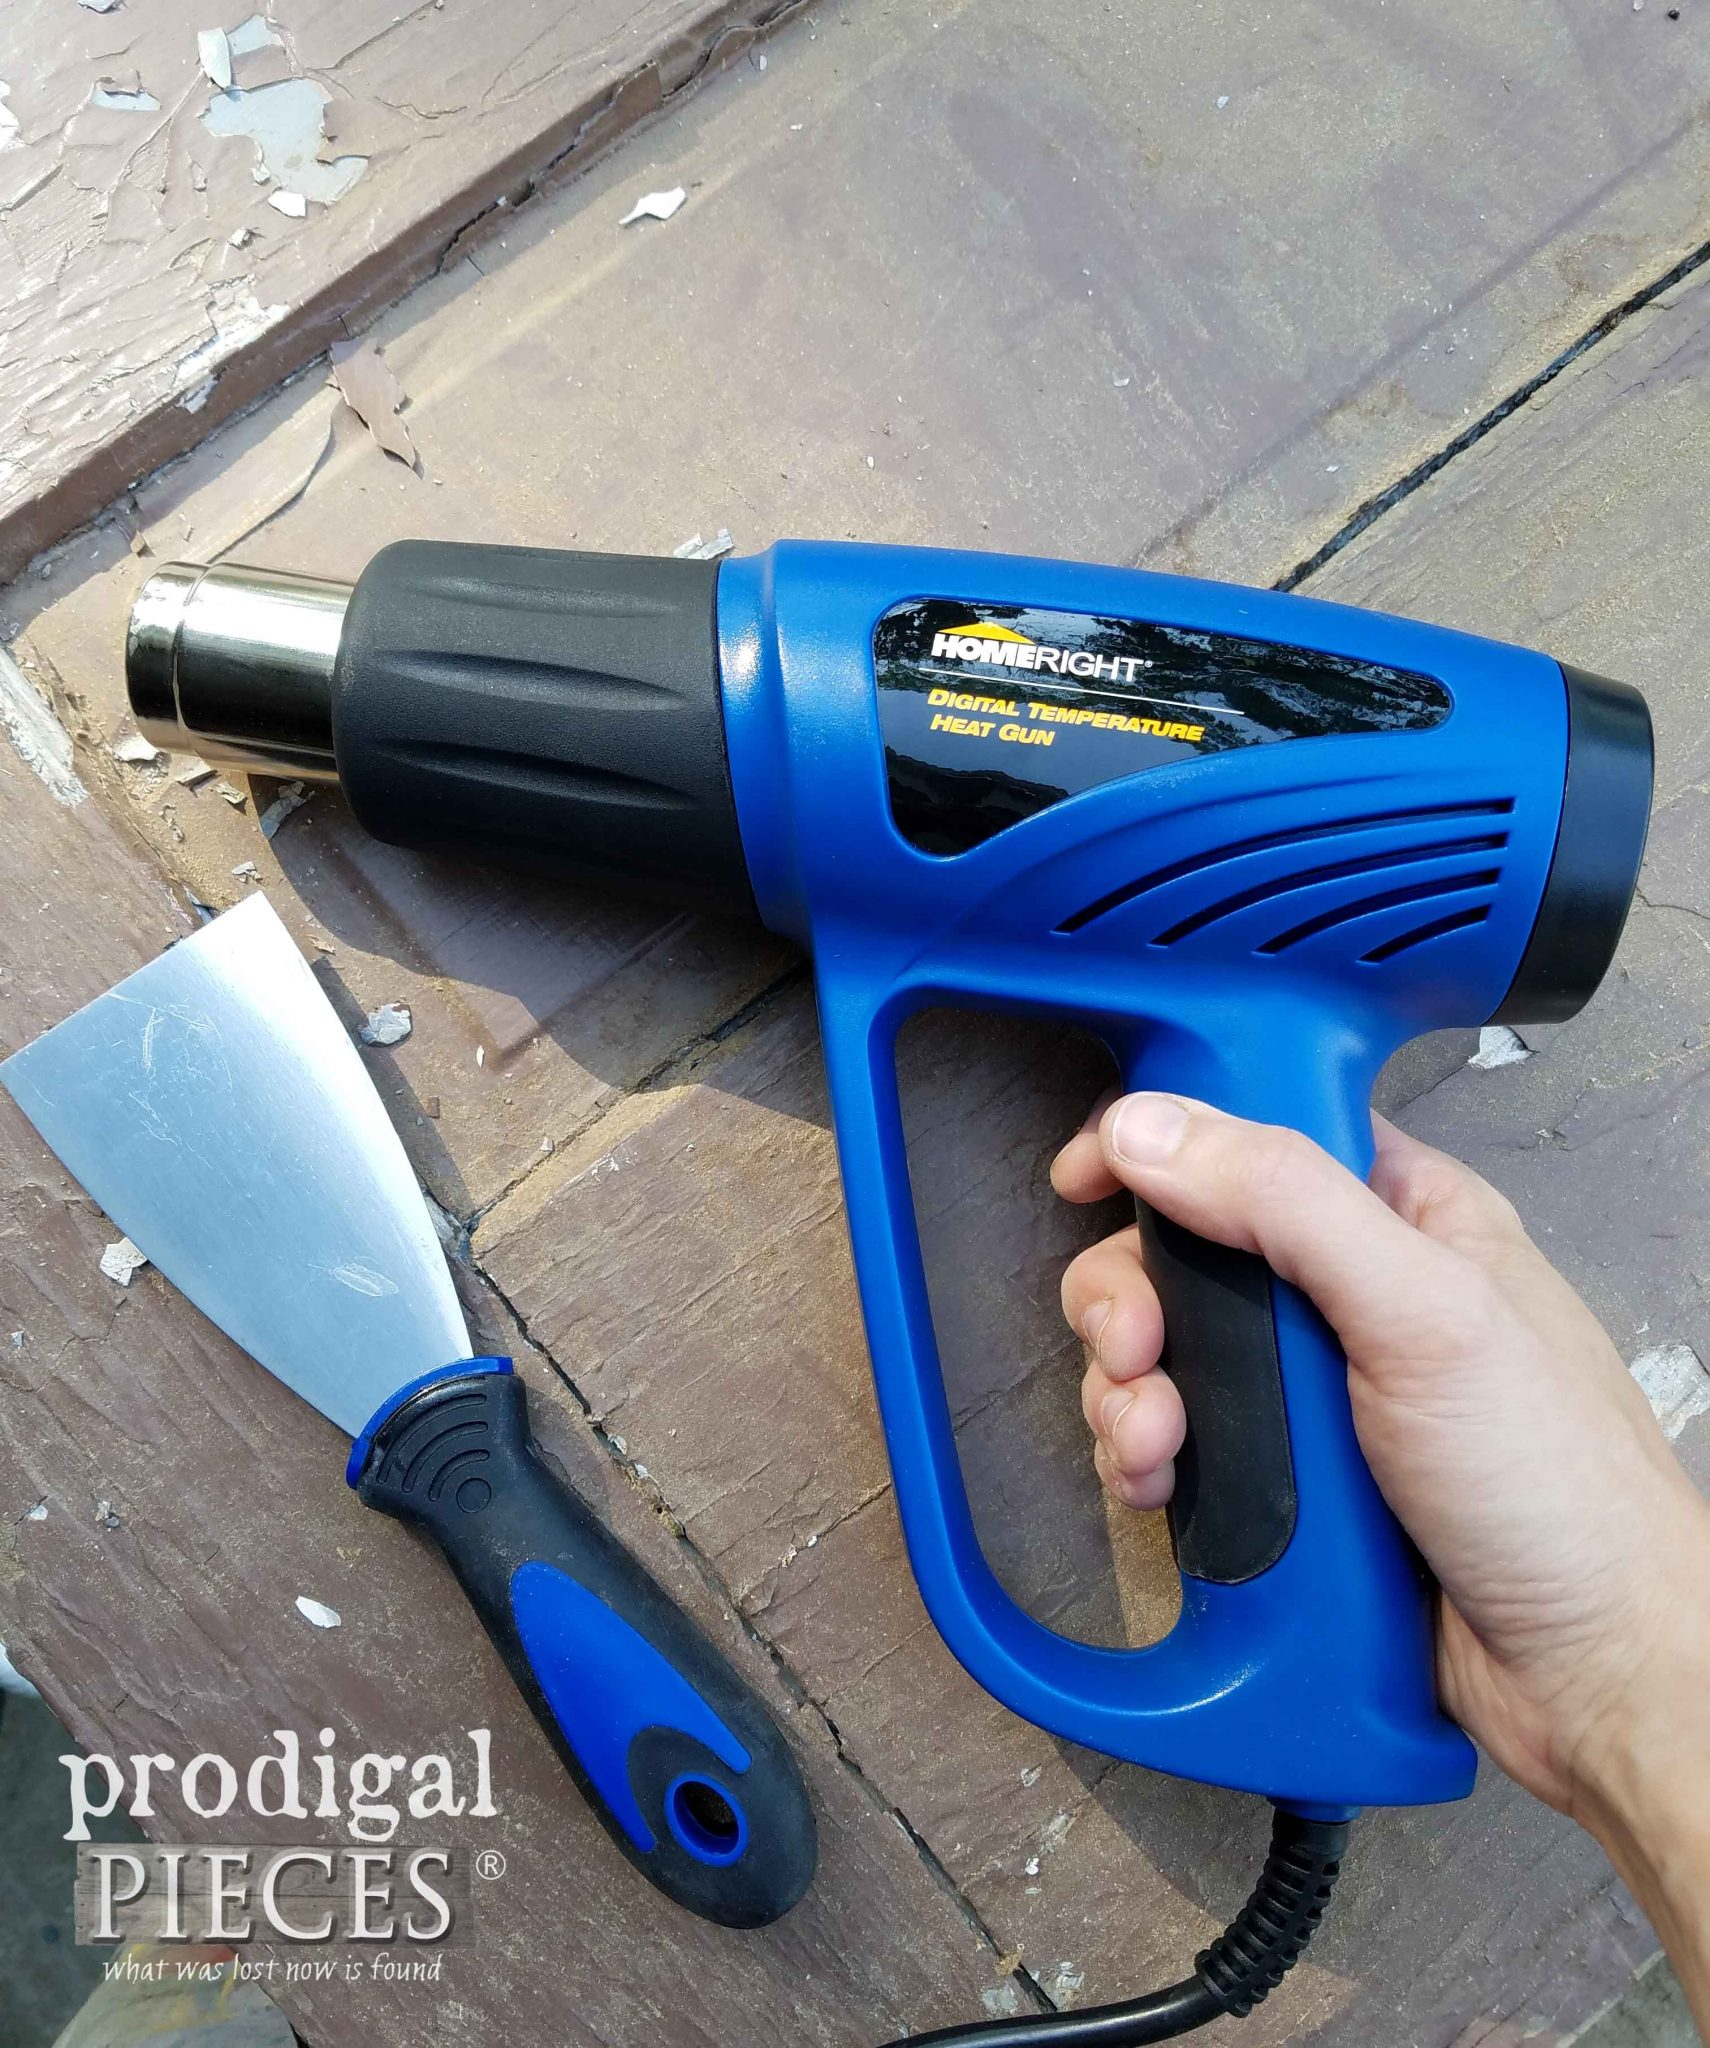 HomeRight Heat Gun to Remove Layers of Paint | prodigalpieces.com